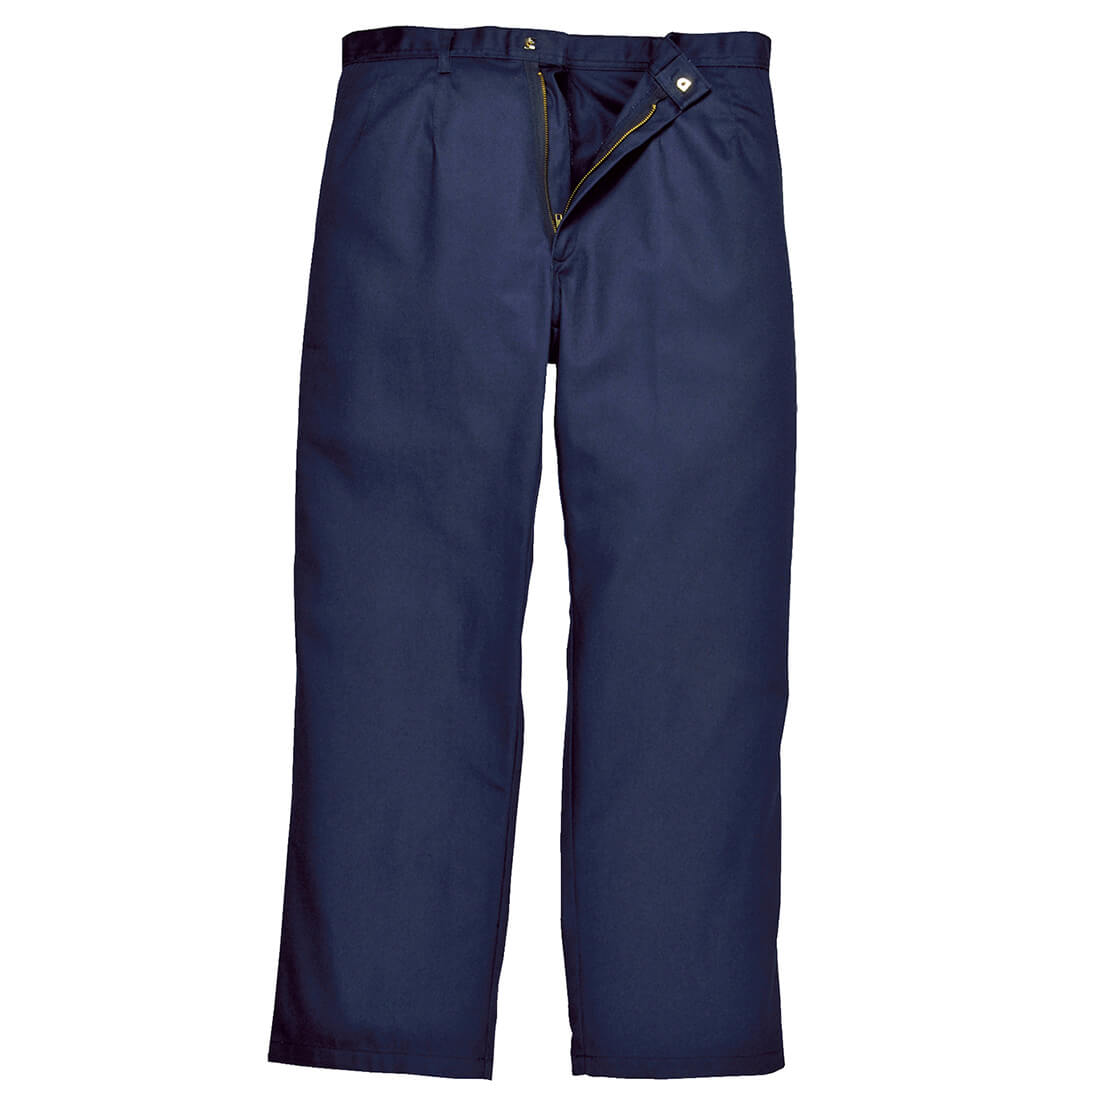 """Image of Biz Weld Mens Flame Resistant Trousers Navy Blue 2XL 32"""""""